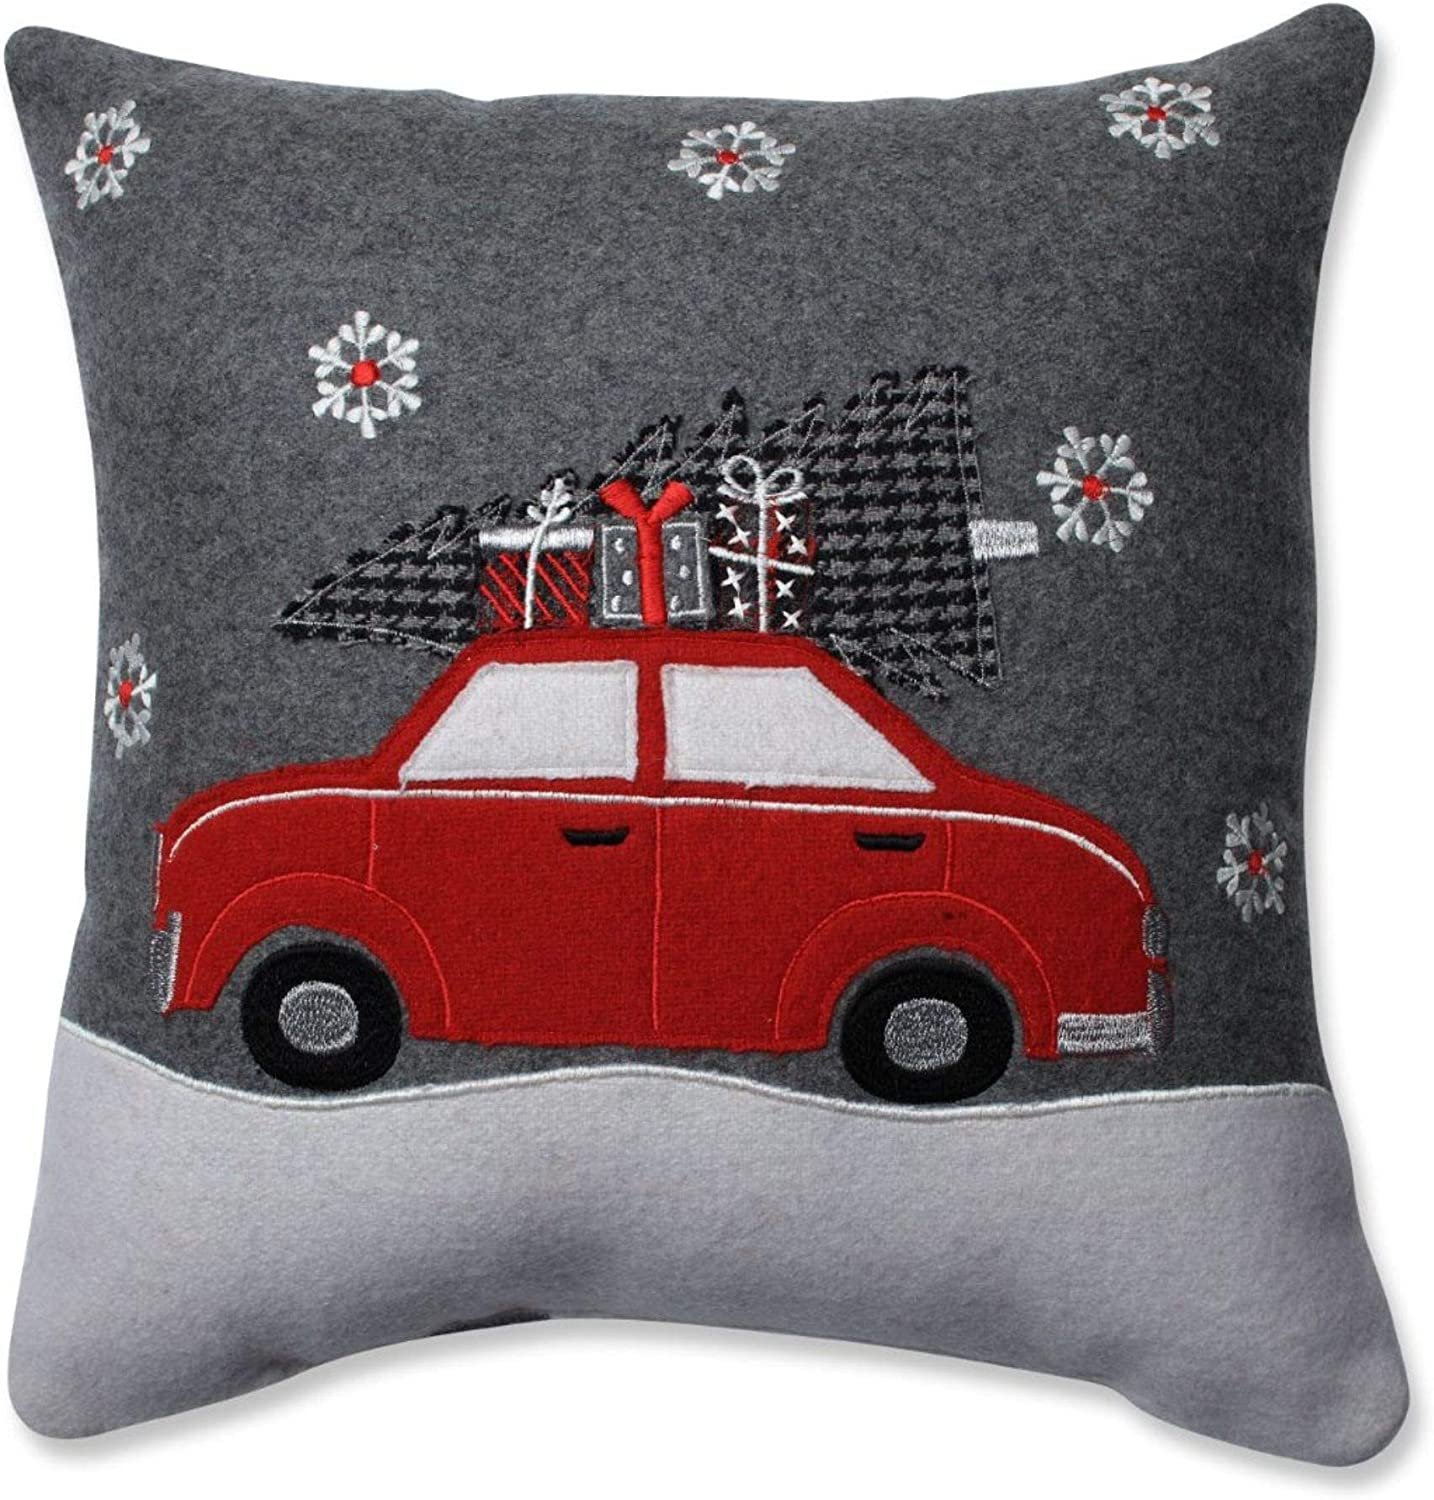 CC Very popular Home Furnishings Direct stock discount 16